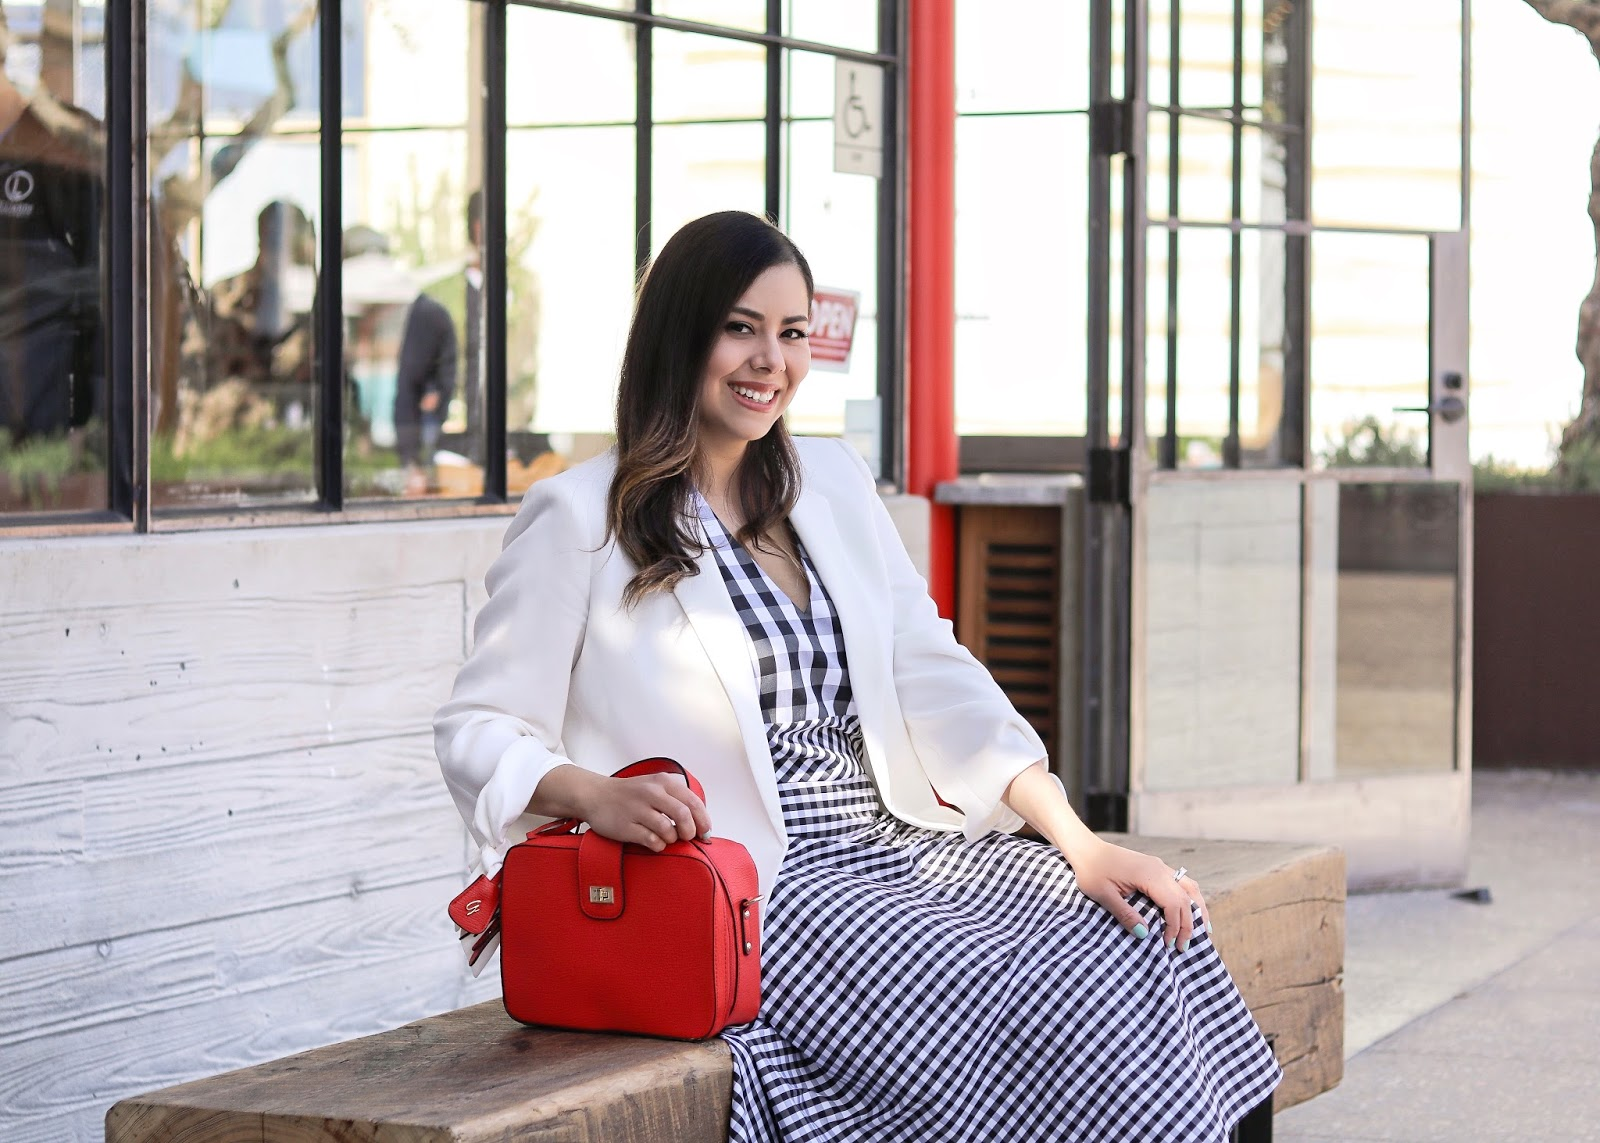 Black and white checkered dress, black and white dress with nude heels, pop of red purse